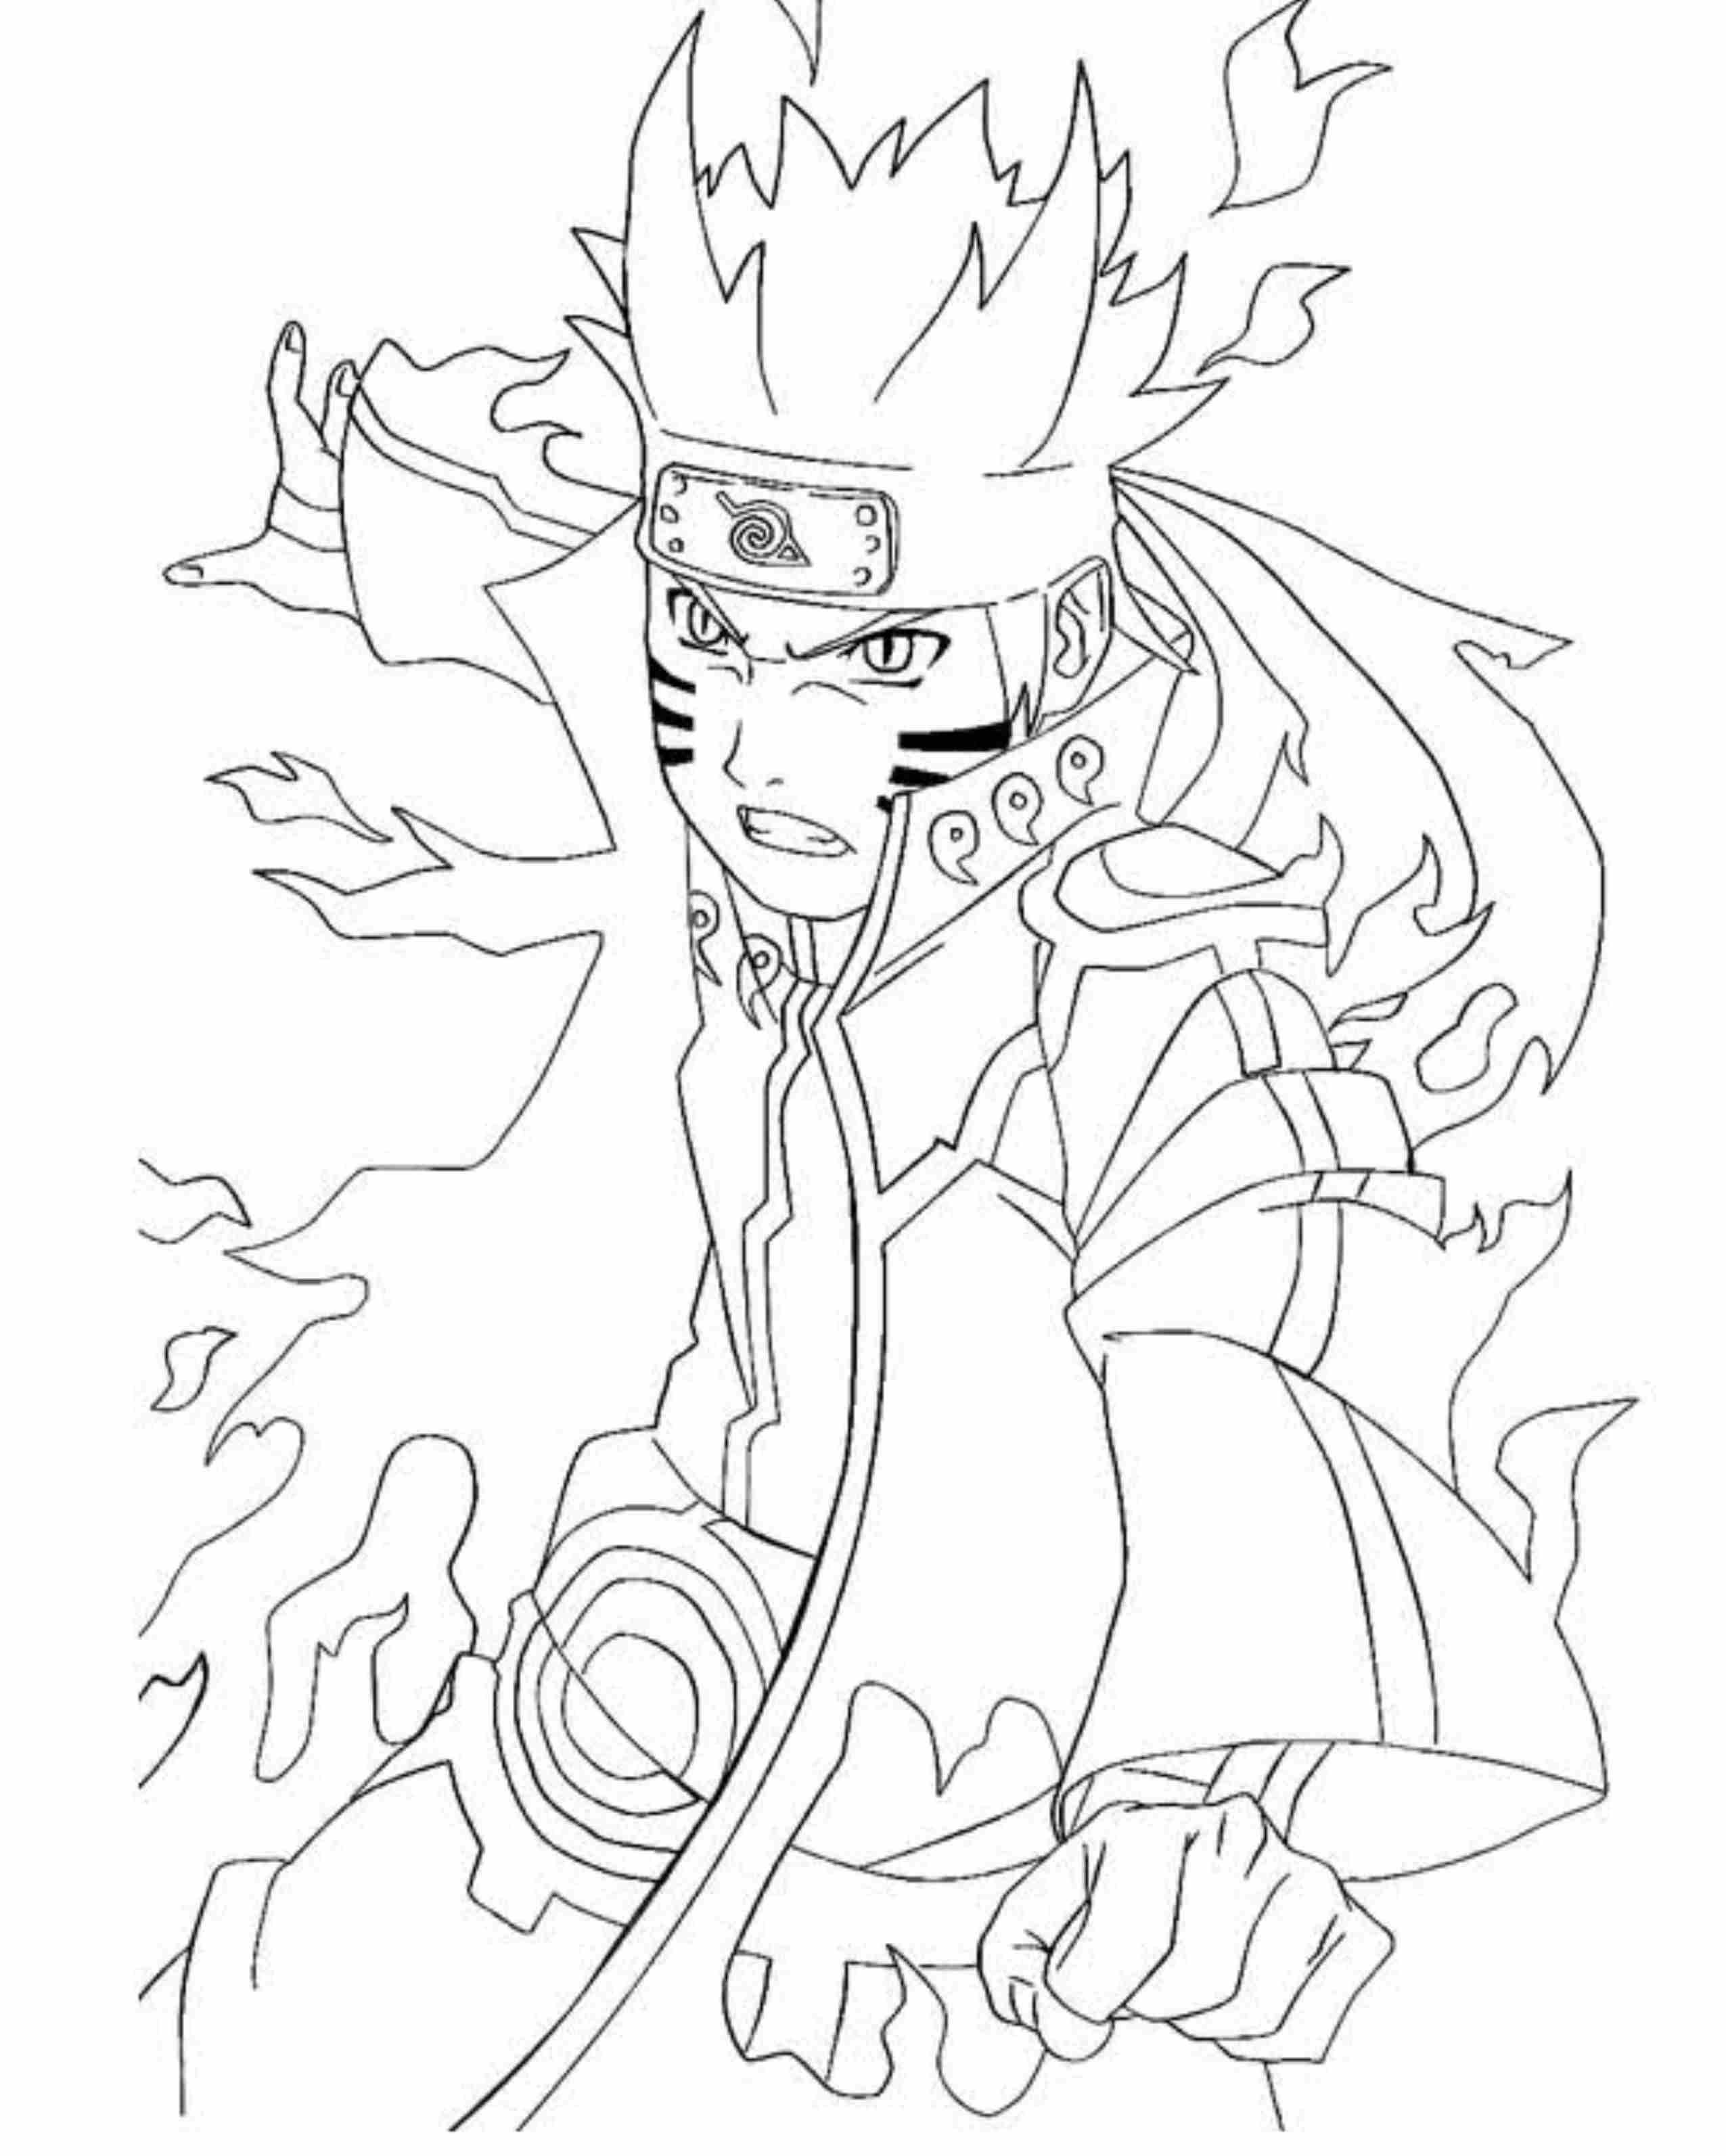 naruto colouring pages naruto coloring pages colouring pages naruto